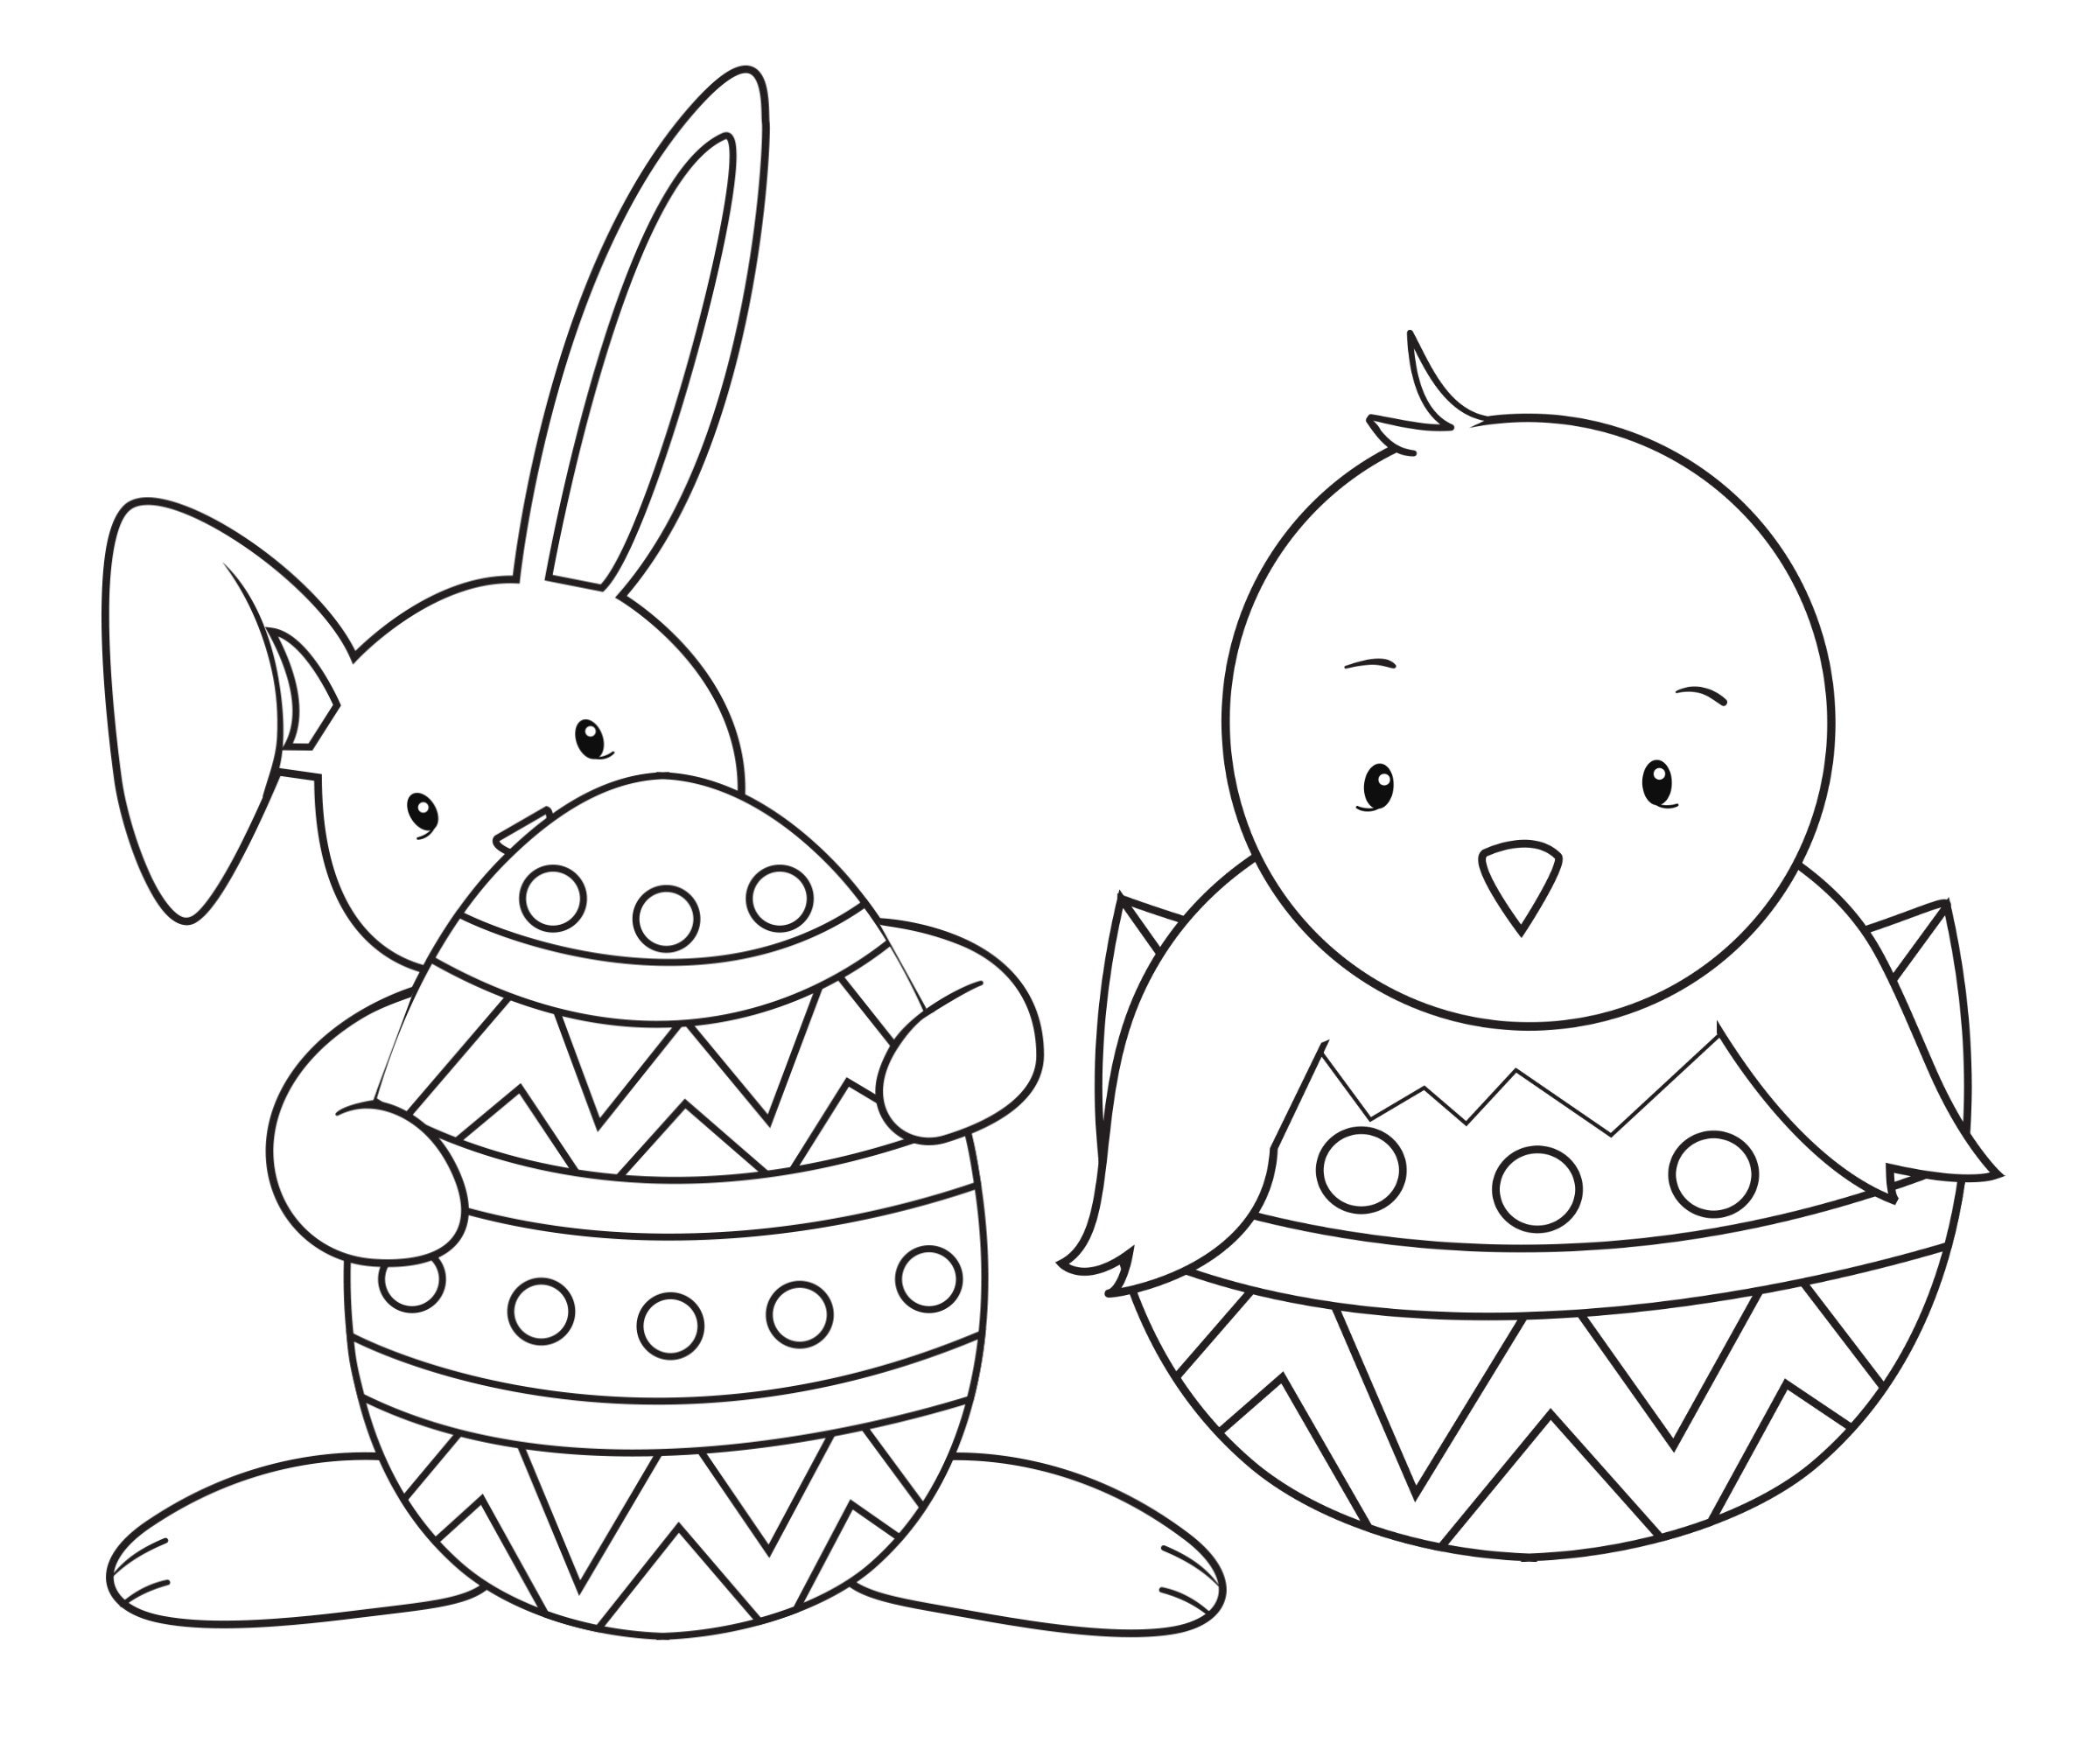 Easter Coloring Pages For Kids - Crazy Little Projects - Coloring Pages Free Printable Easter